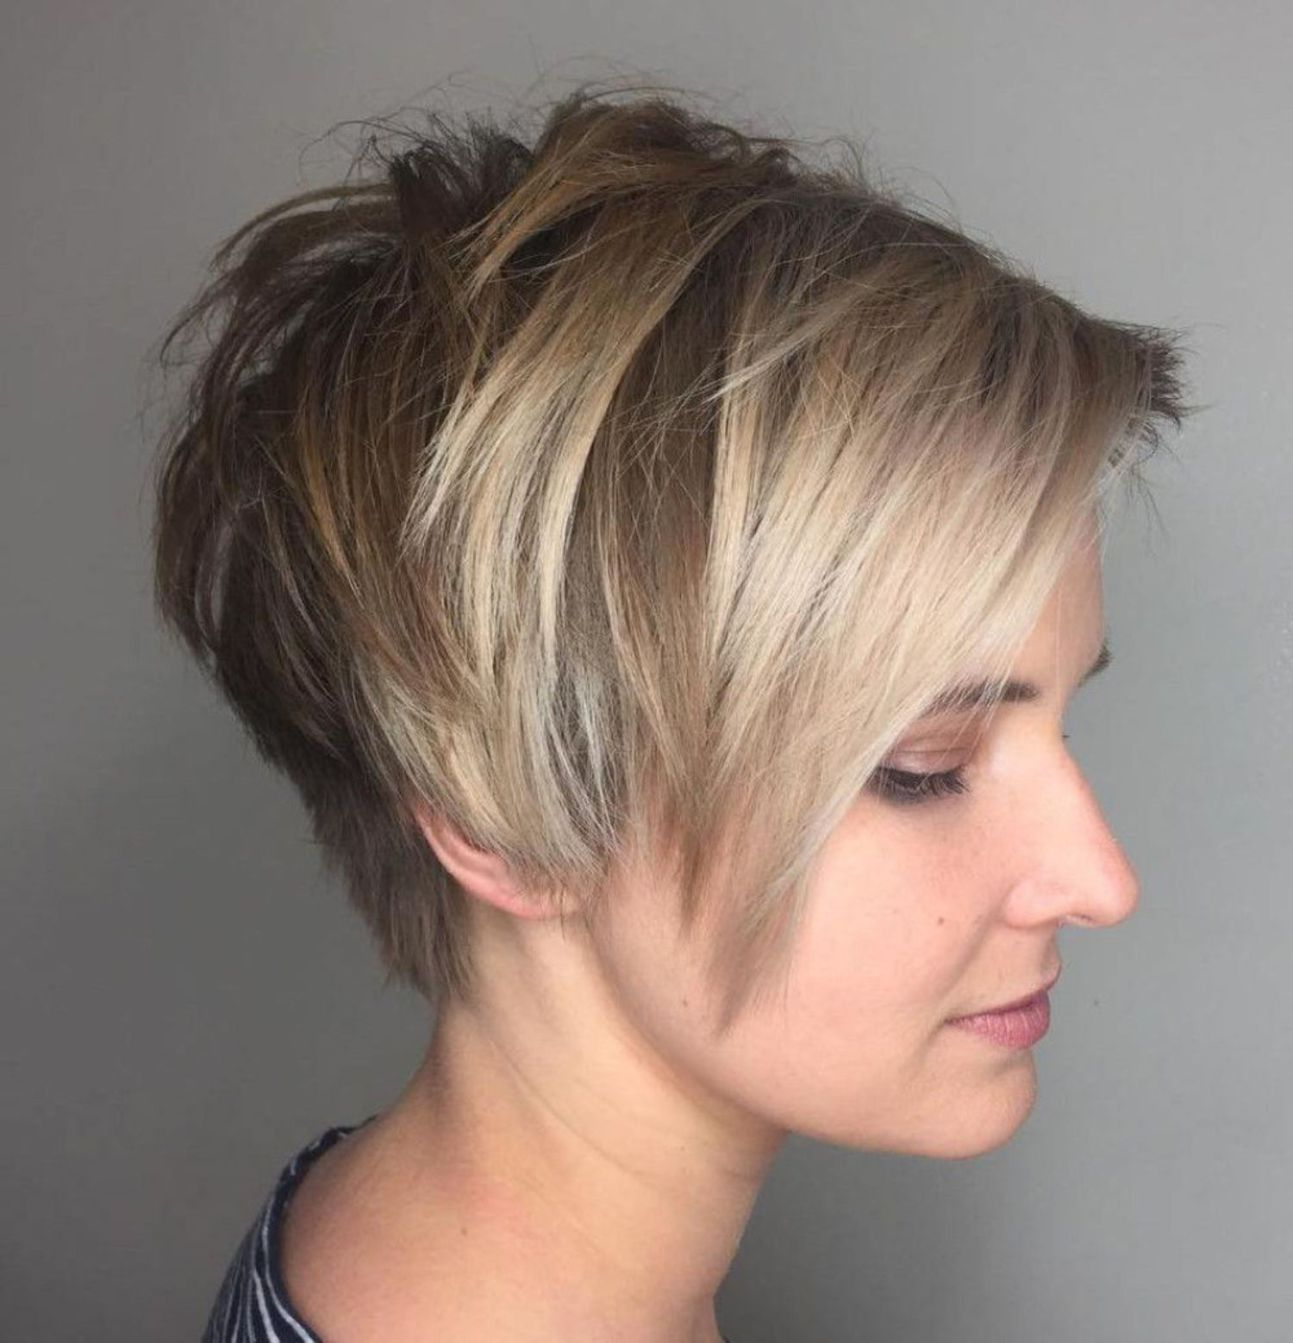 Short Shaggy Spiky Edgy Pixie Cuts and Hairstyles  Hairstyles